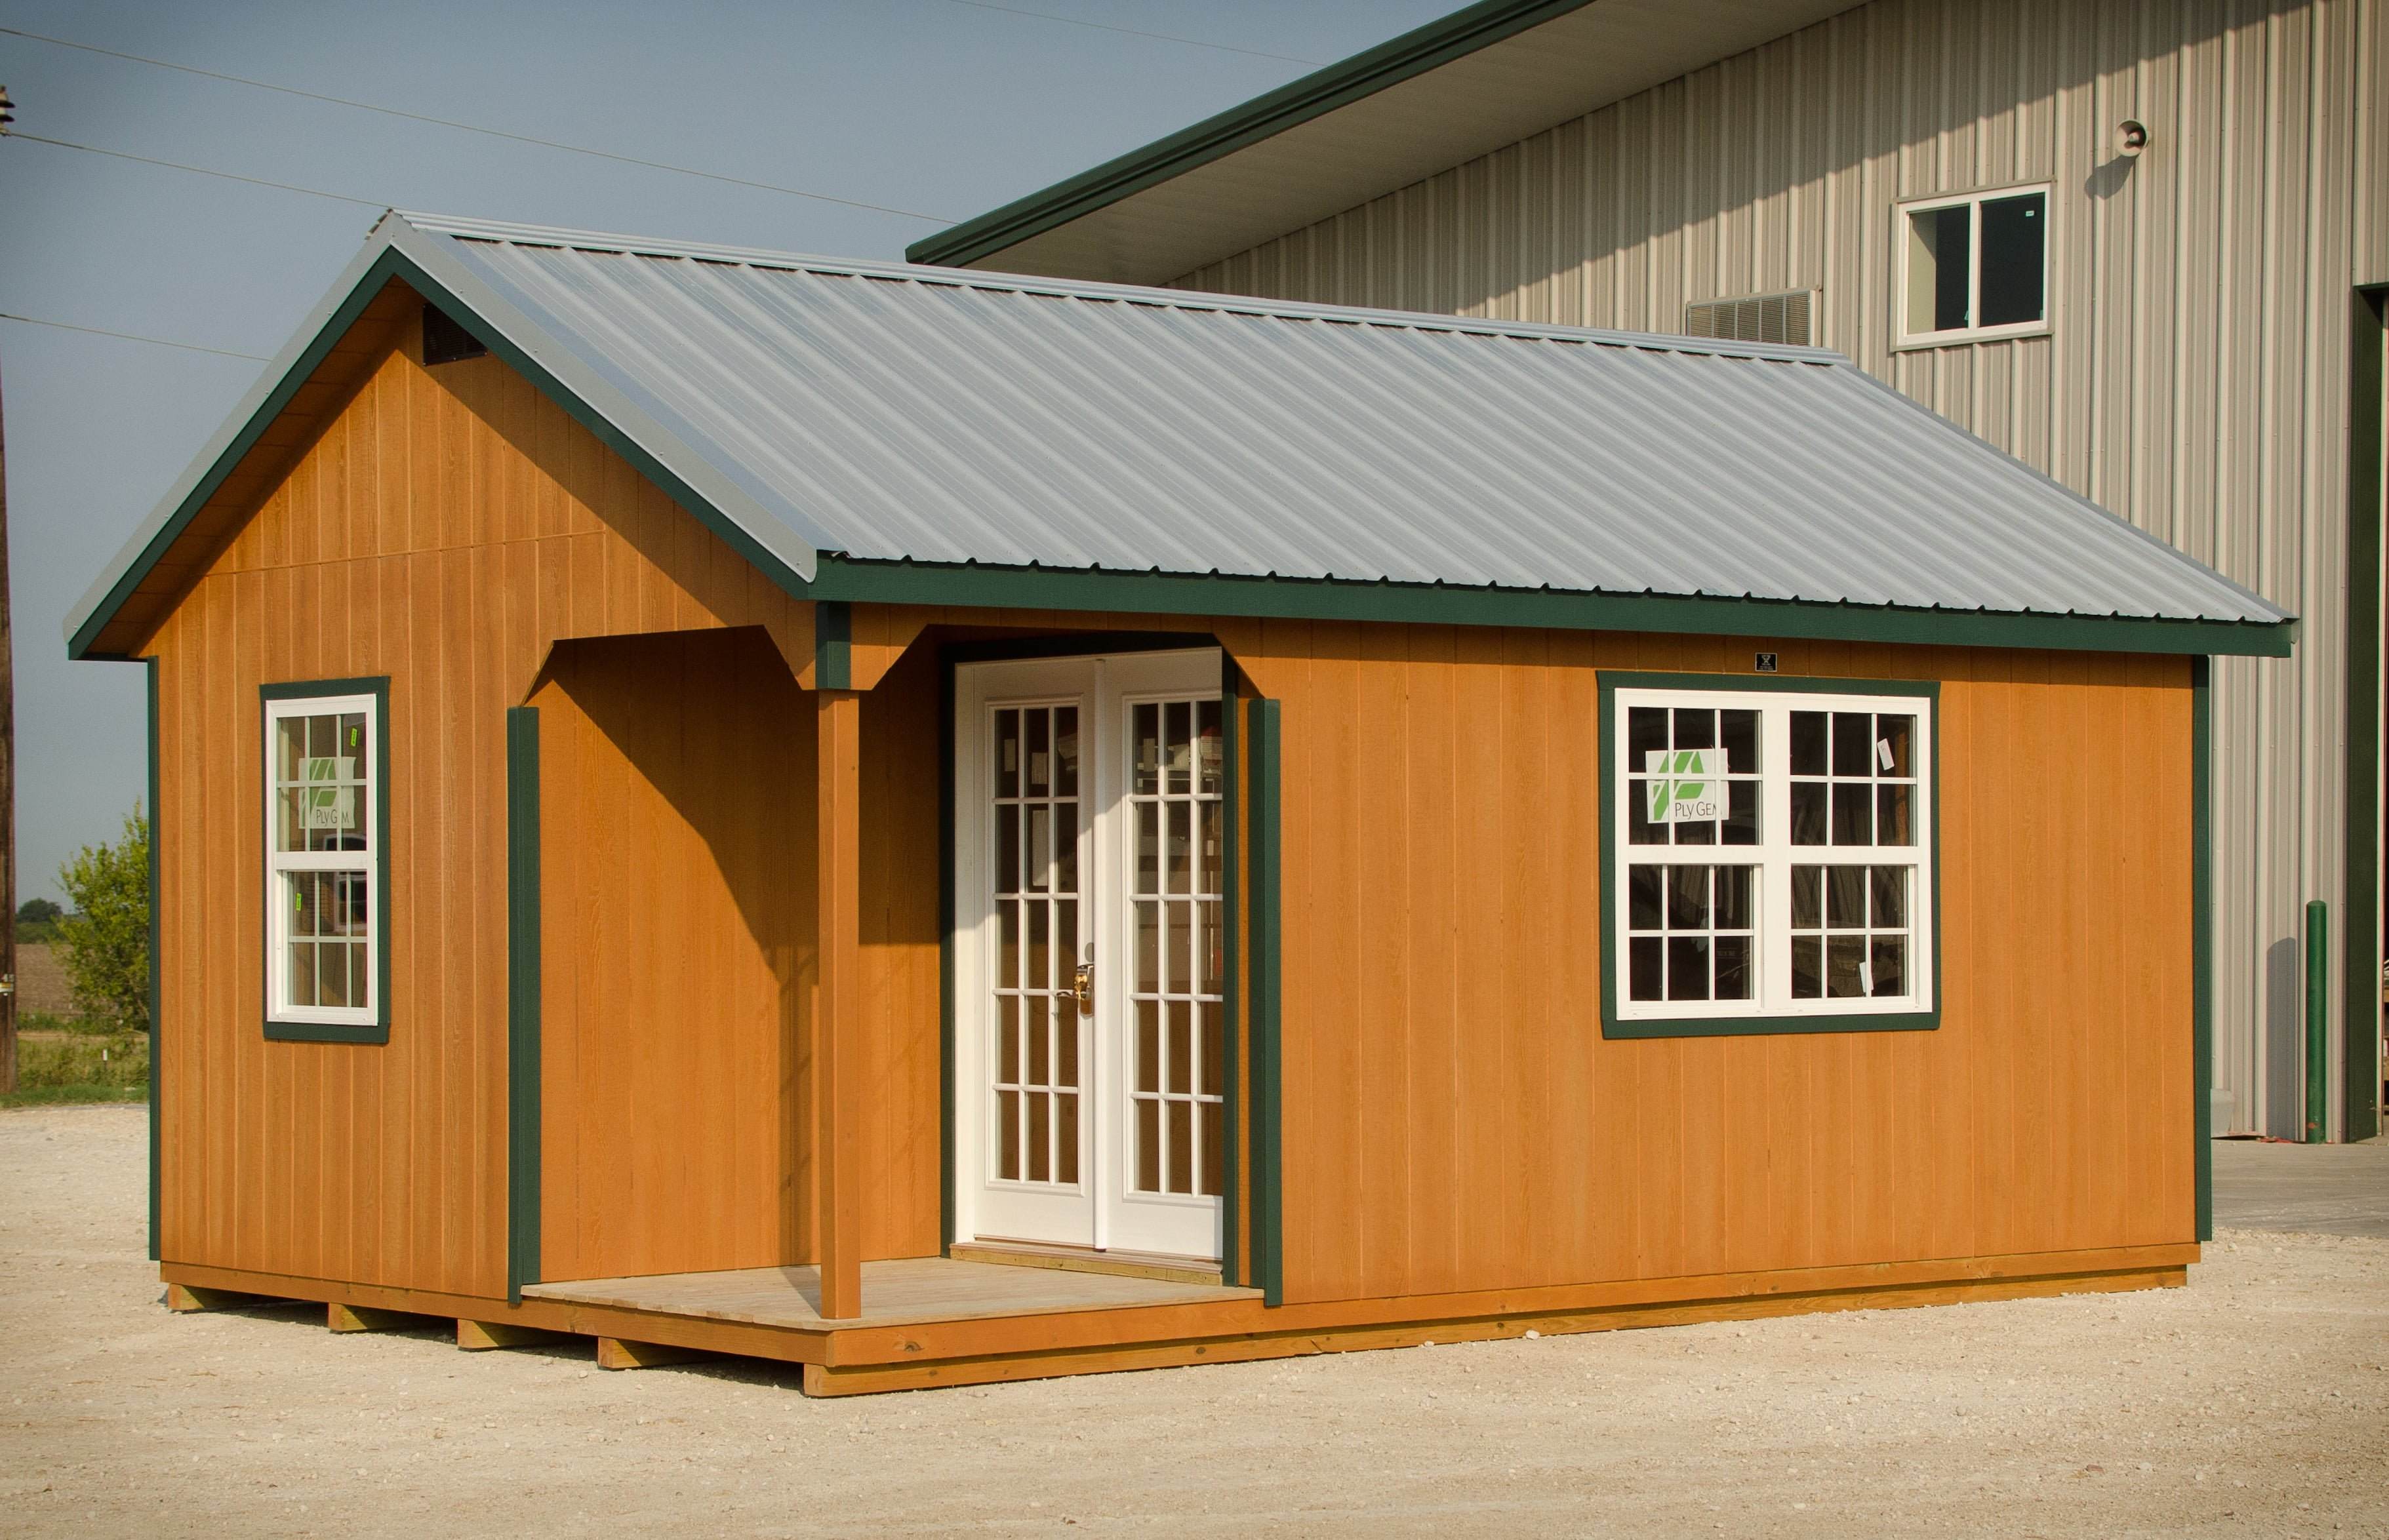 16x40 Finished Portable Buildings Oklahoma - 0425